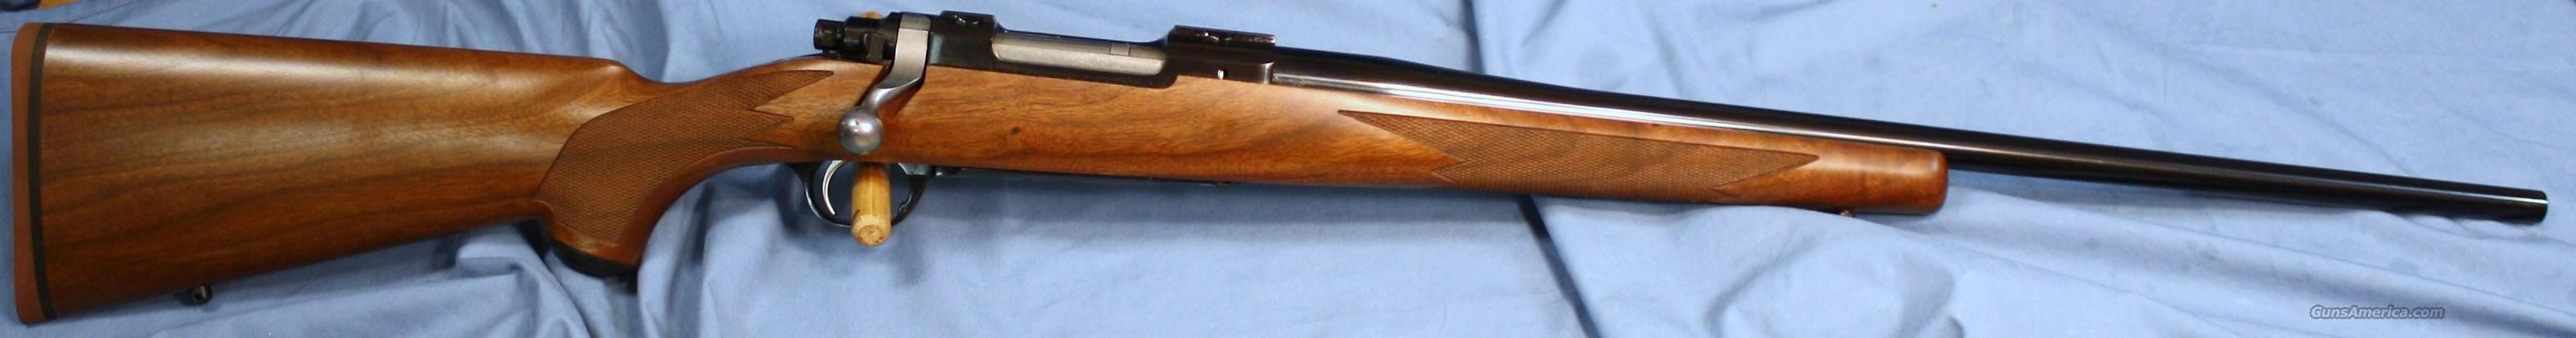 Ruger Model 77 Hawkeye Bolt Action Rifle .308 Win  Guns > Rifles > Ruger Rifles > Model 77